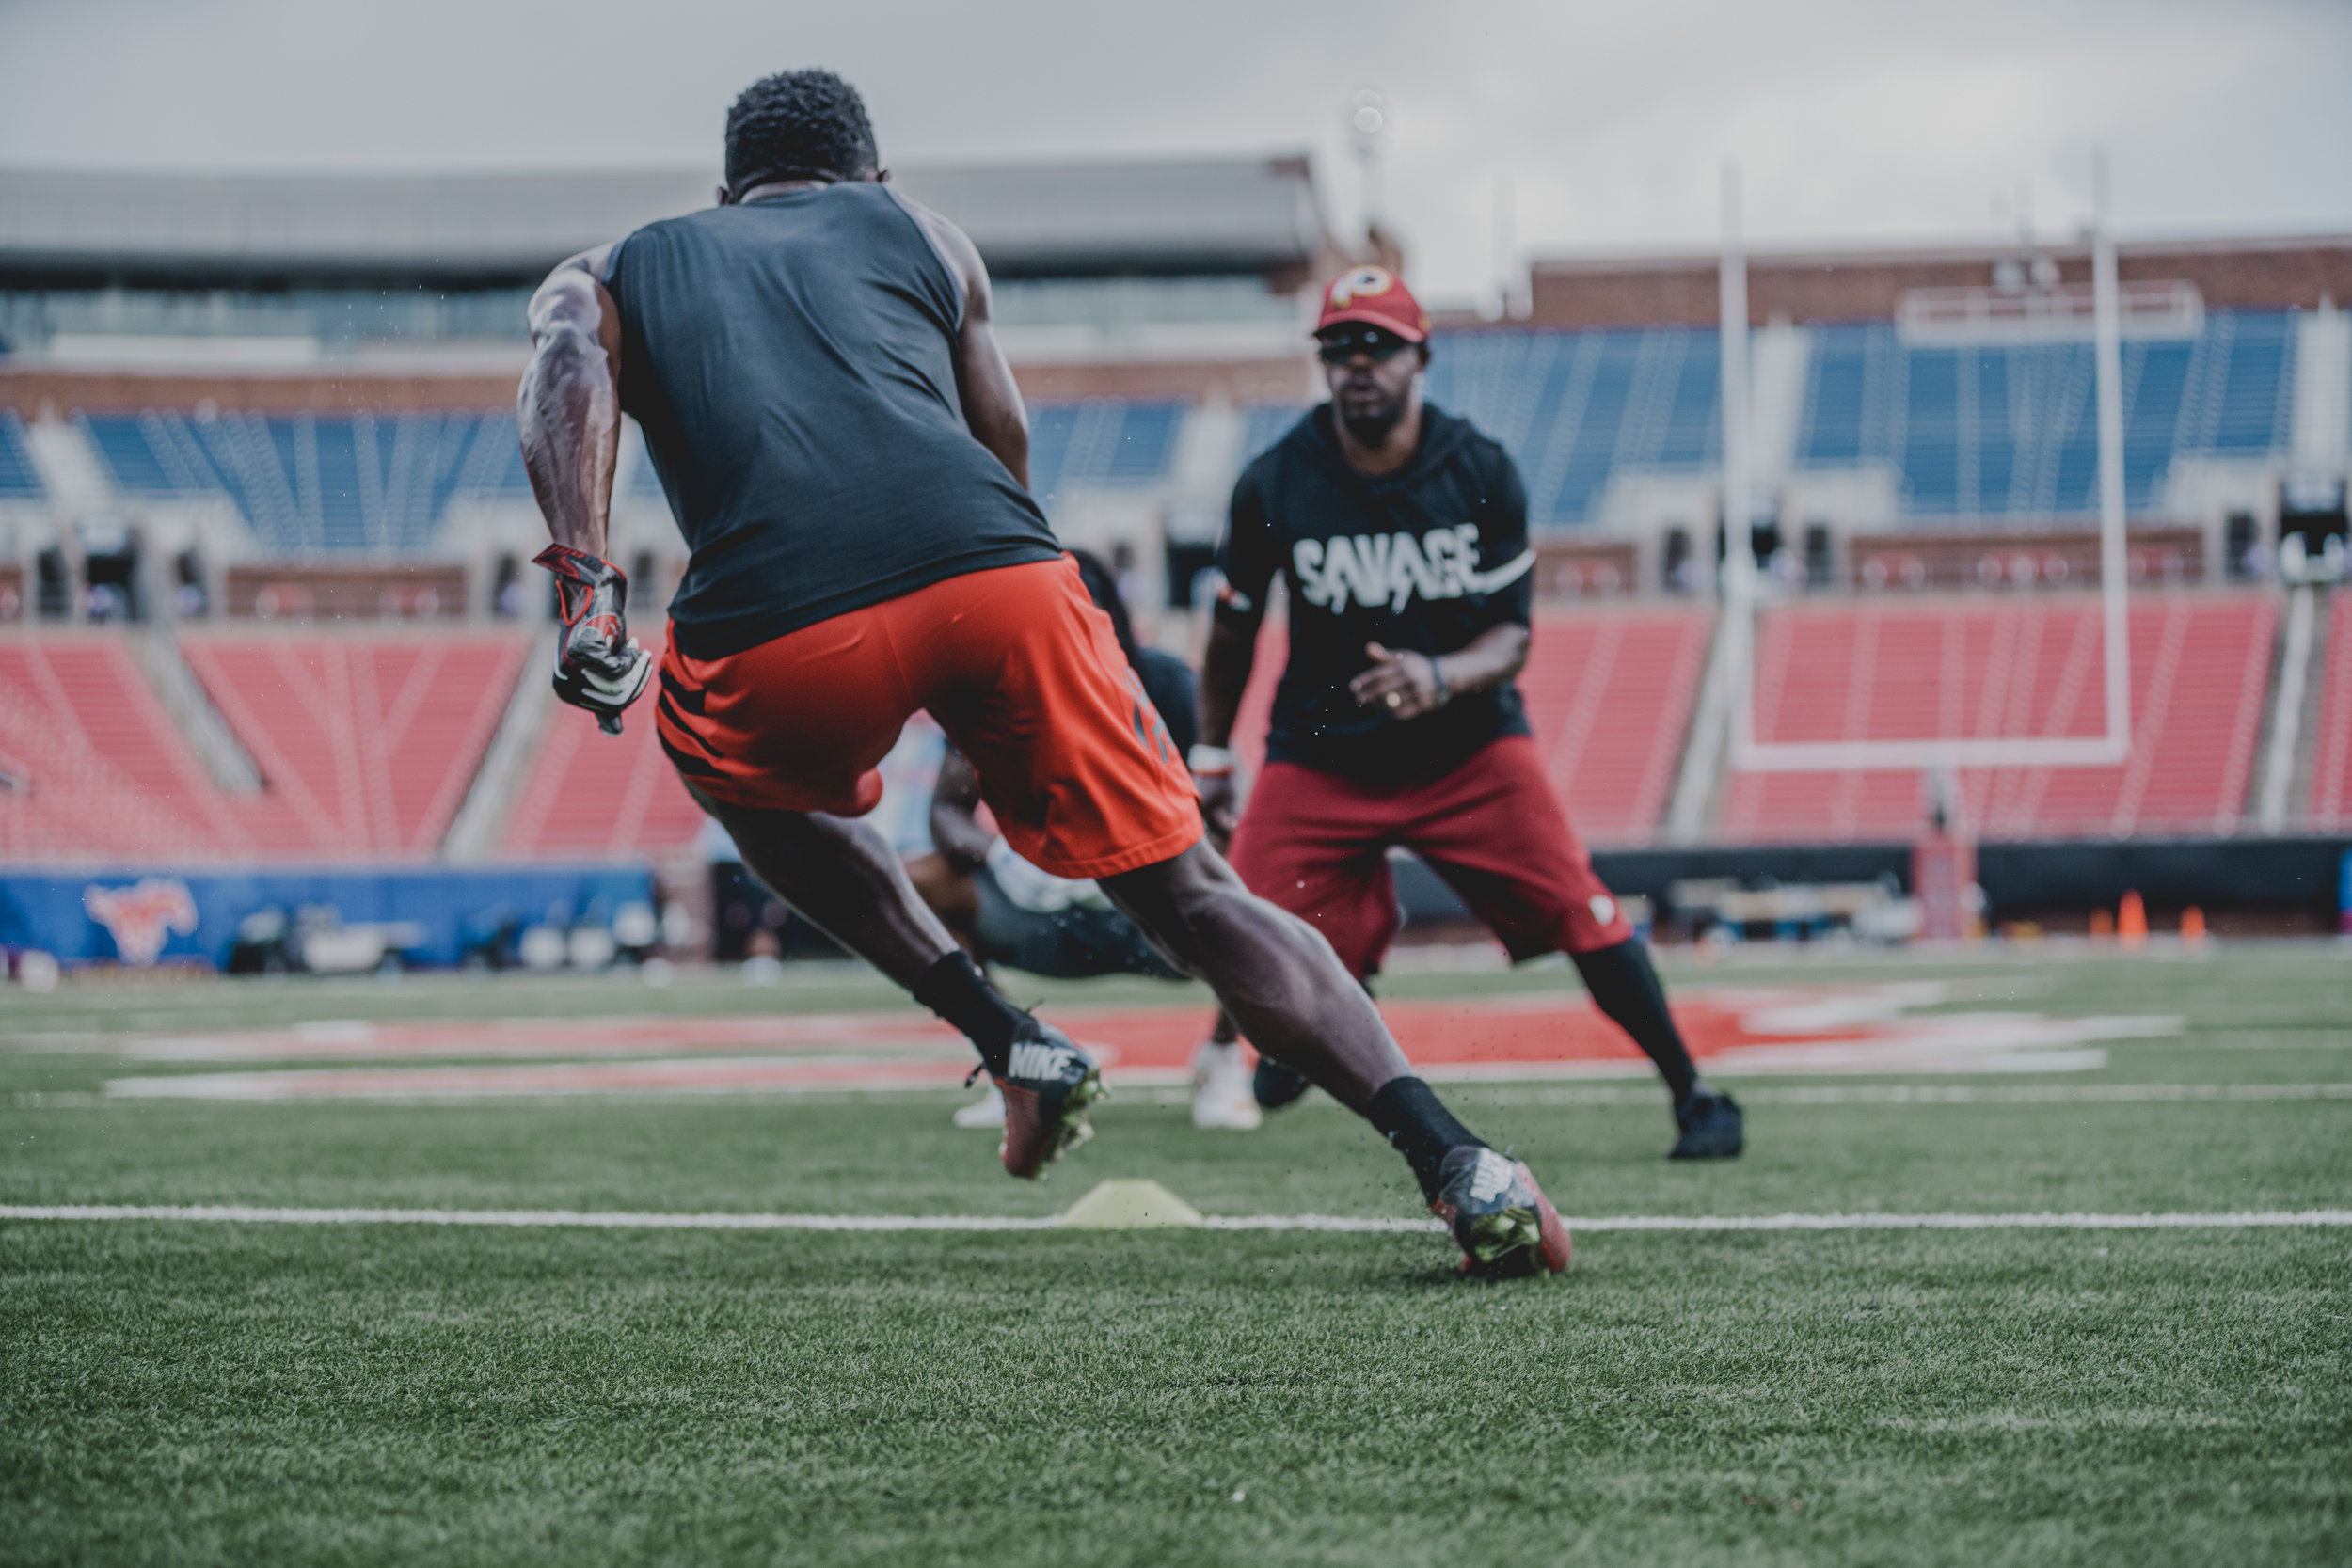 WE ARE INNOVATIVE AND COMPETITIVE. - D-ROB PROVIDES THE VERY BEST TRAINING TO PROFESSIONAL ATHLETES.SERVICES ➝TESTIMONIALS ➝PRIVATE TRAINING ➝